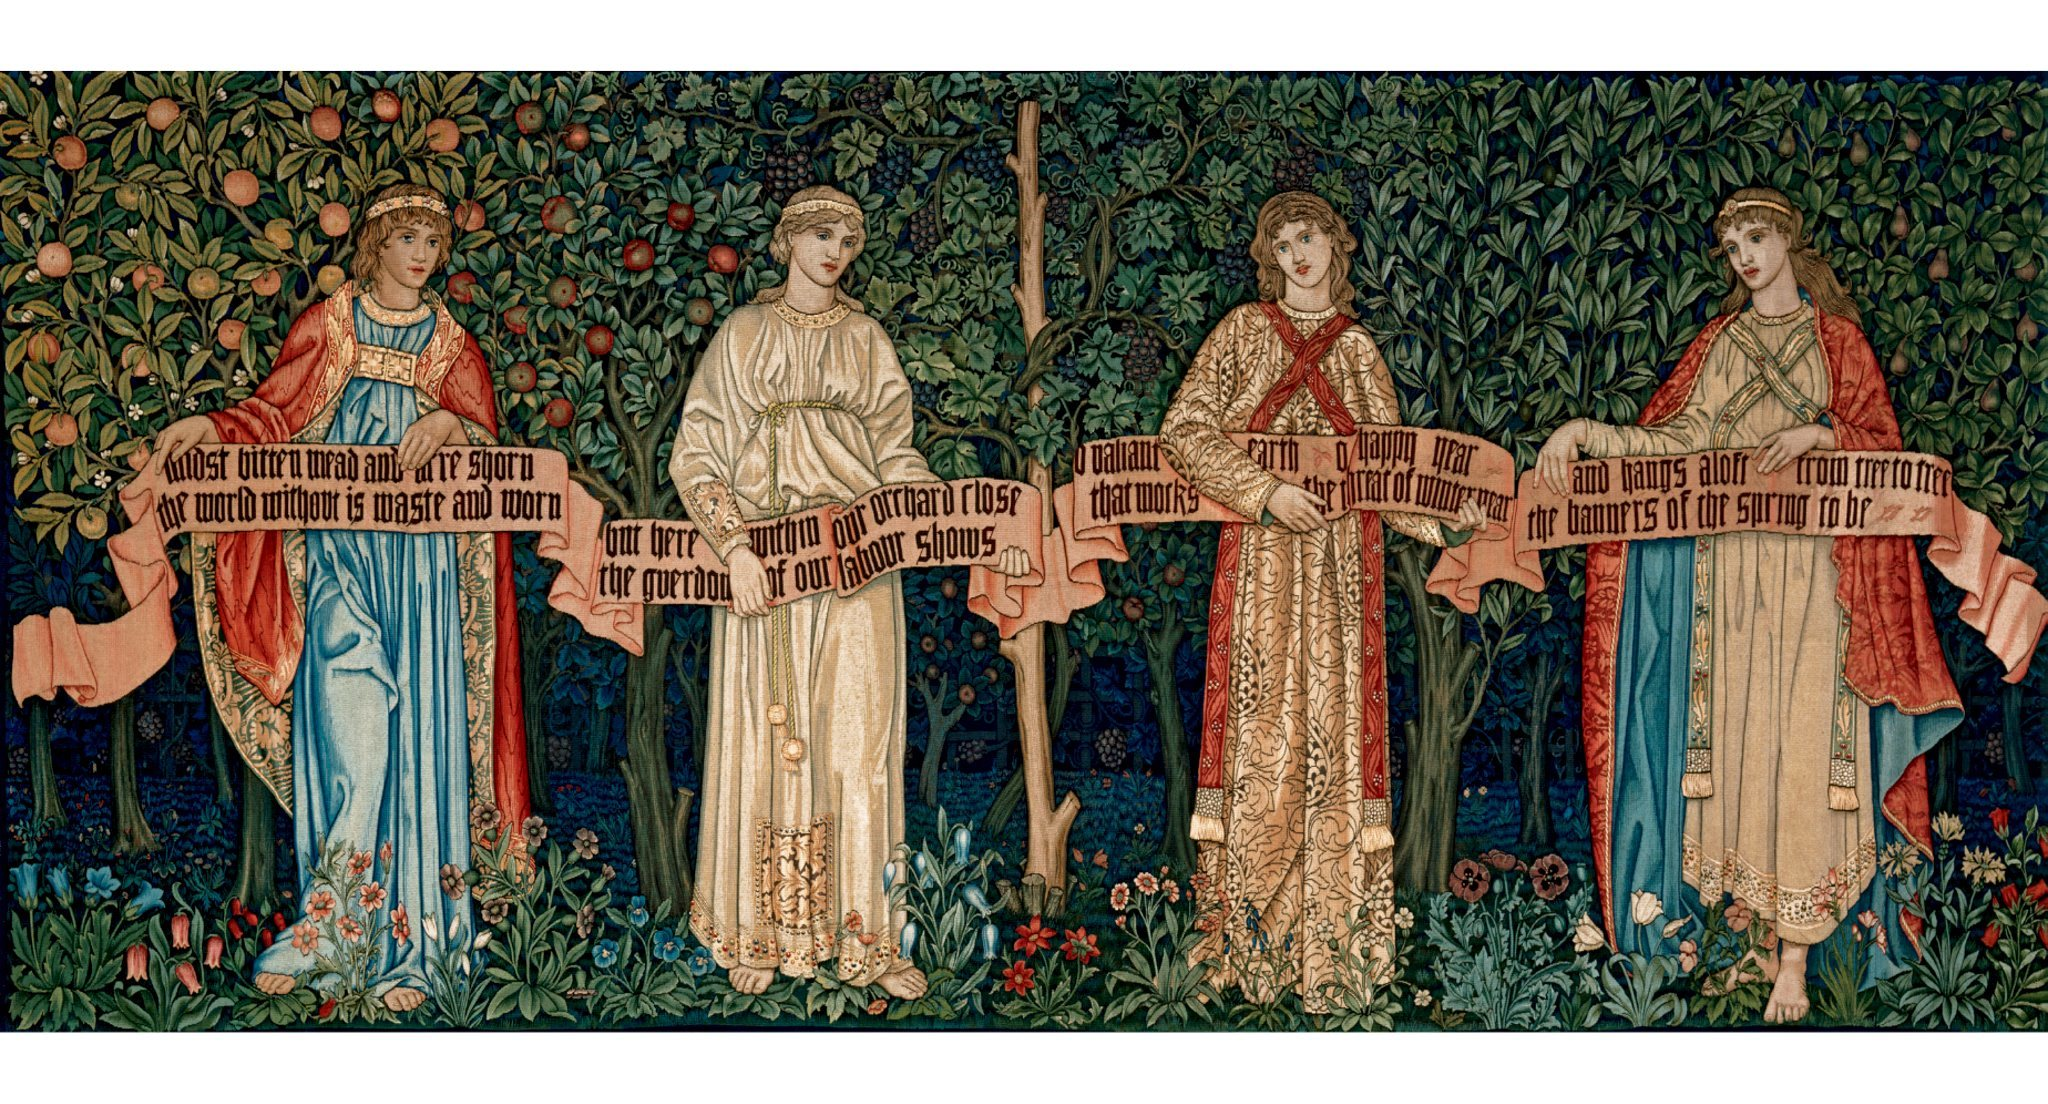 (William Morris, John Henry Dearle, Morris & Co: 'The Orchard', 1890. © Victoria & Albert Museum)